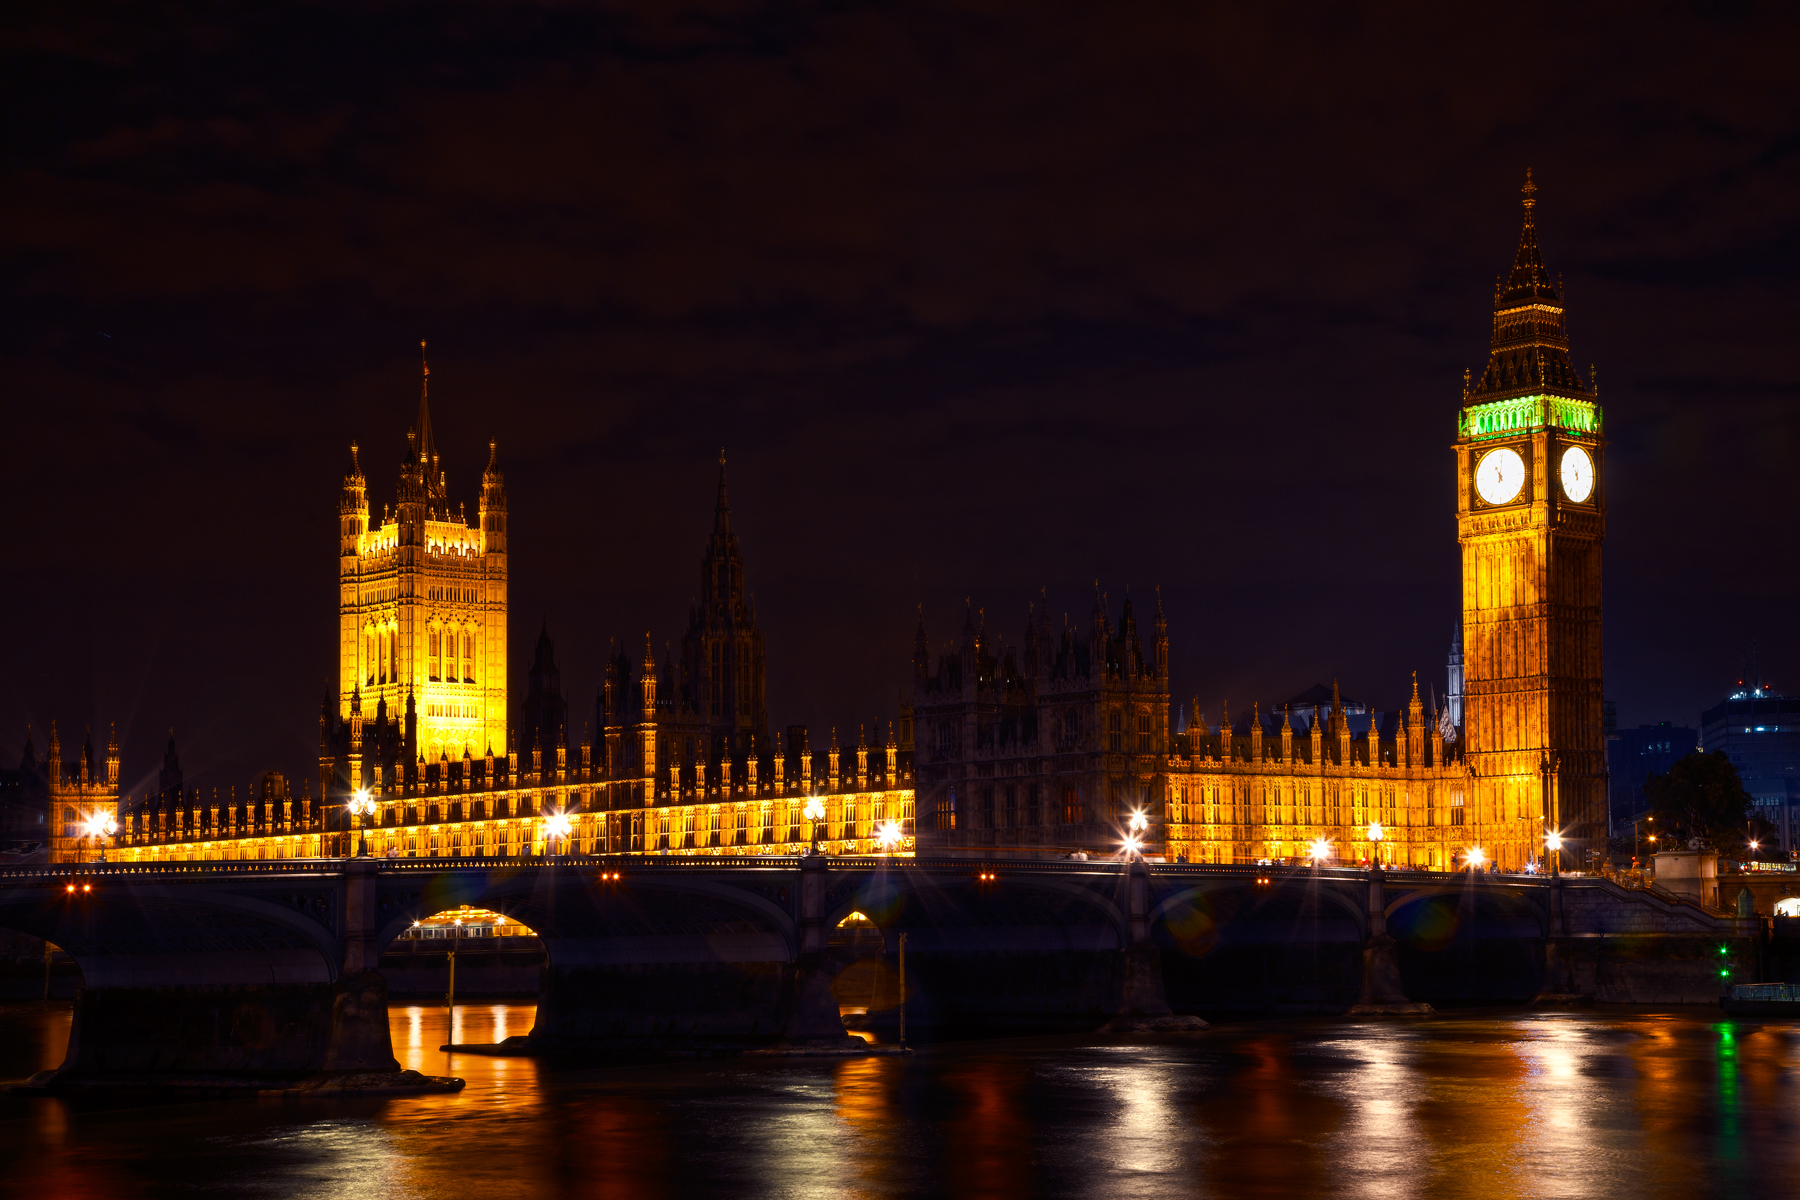 London parliament at night photo